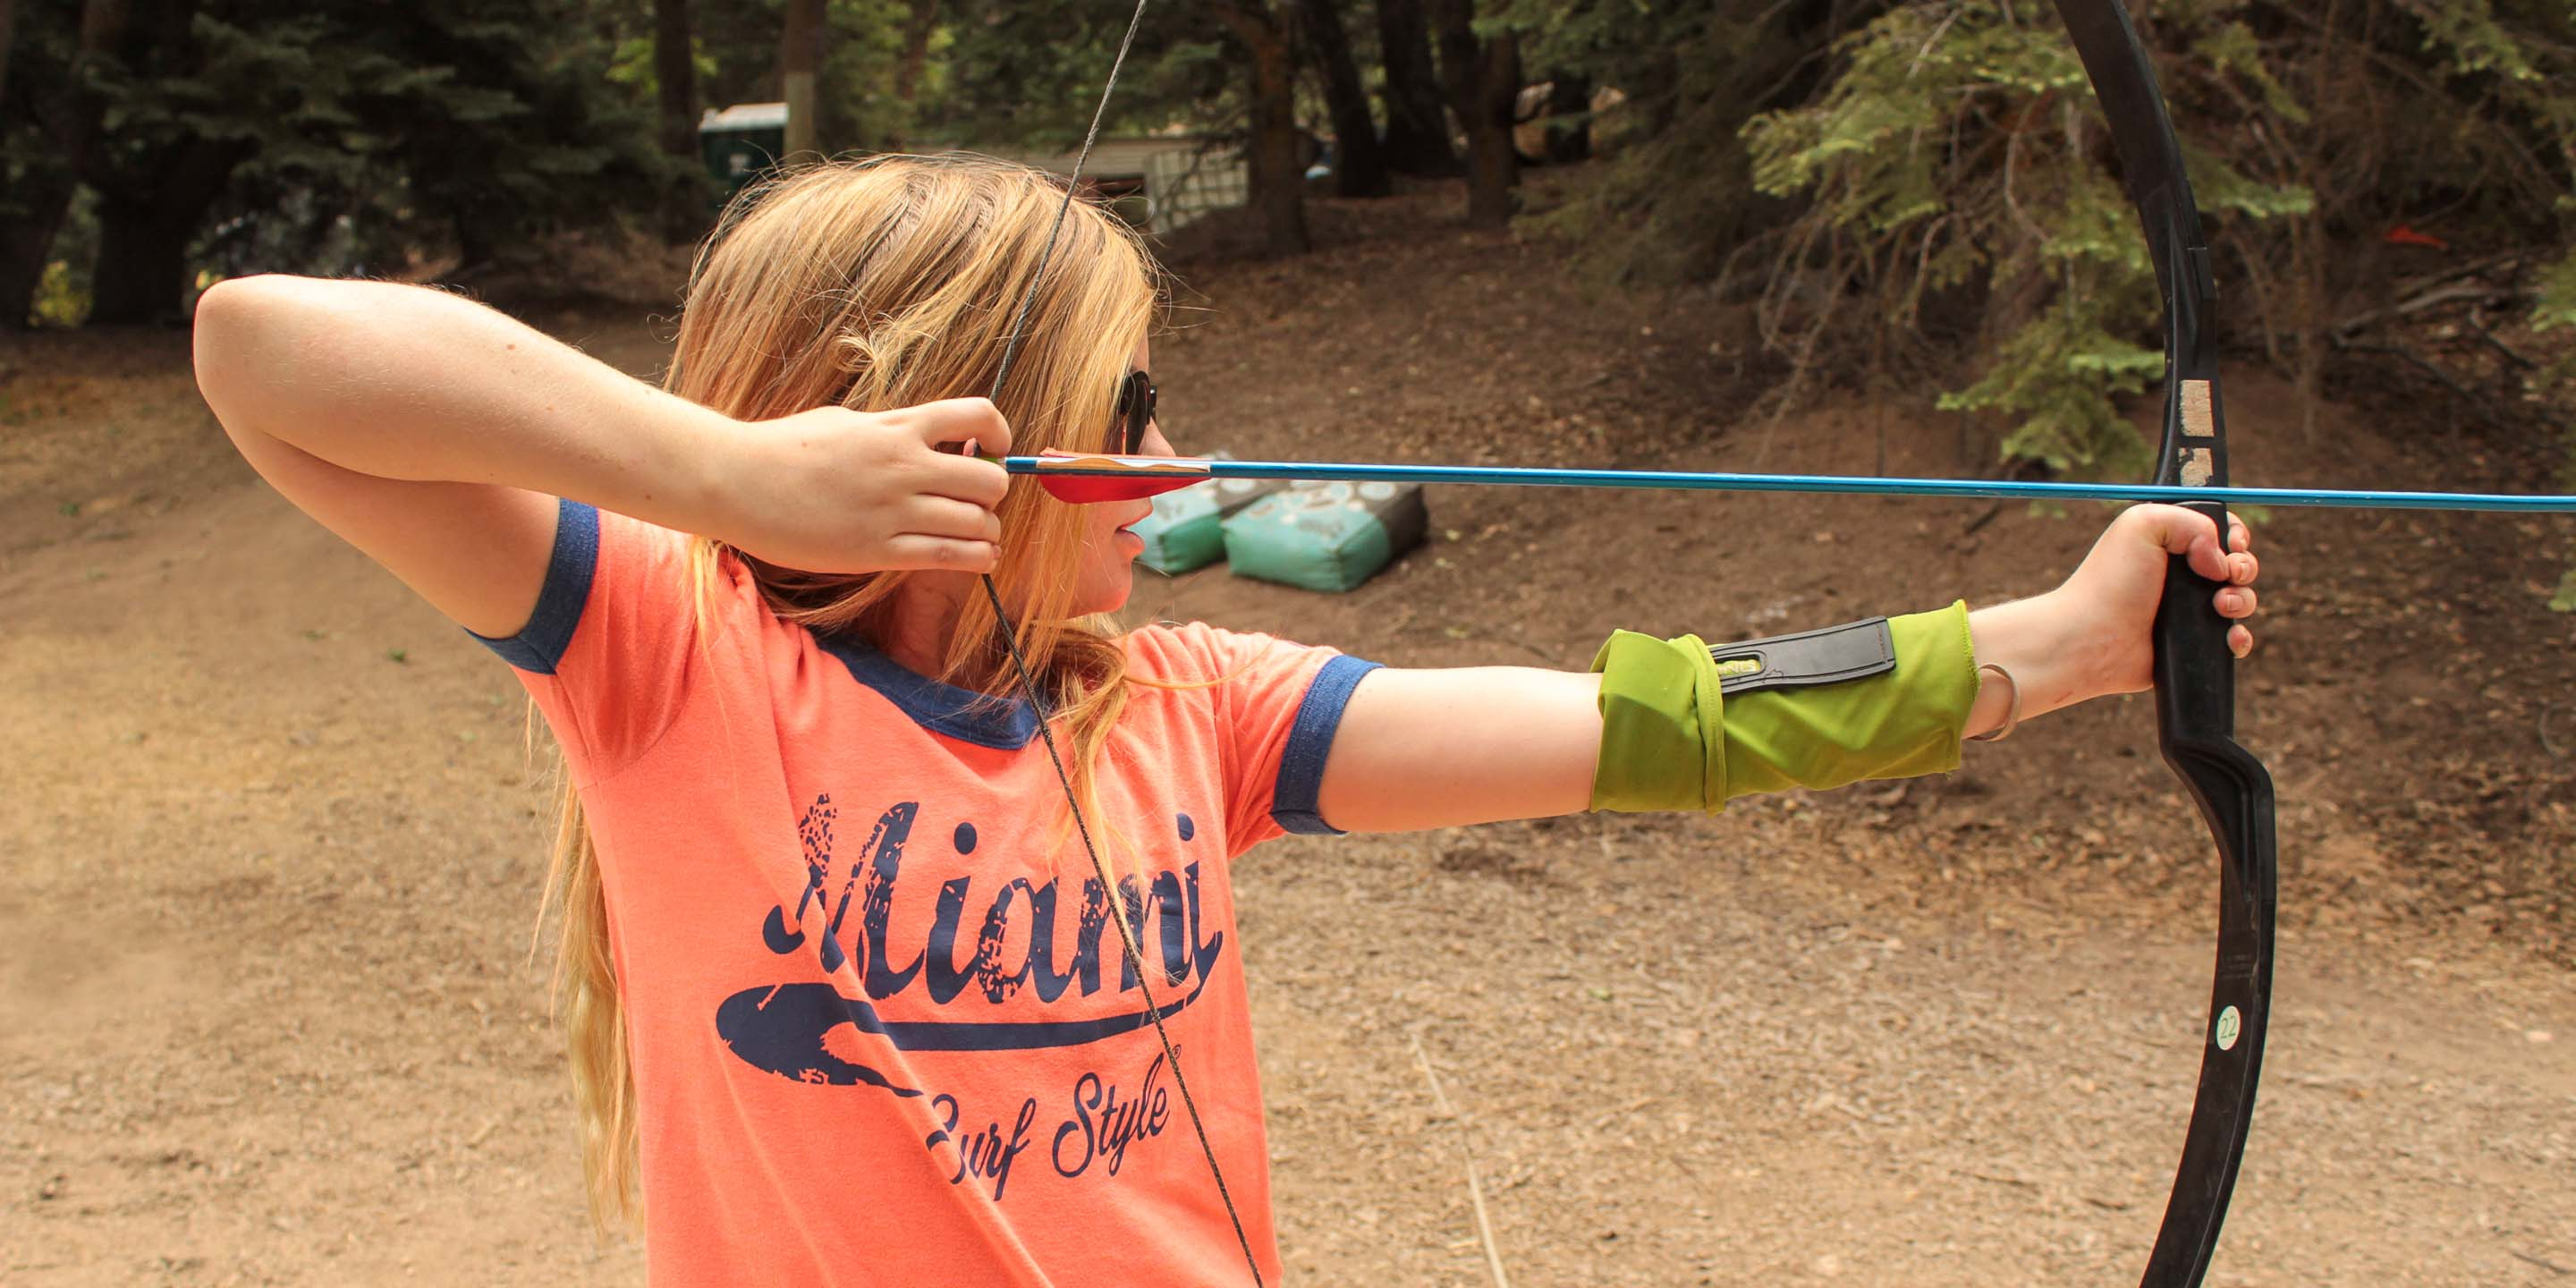 Girl shooting an archery arrow